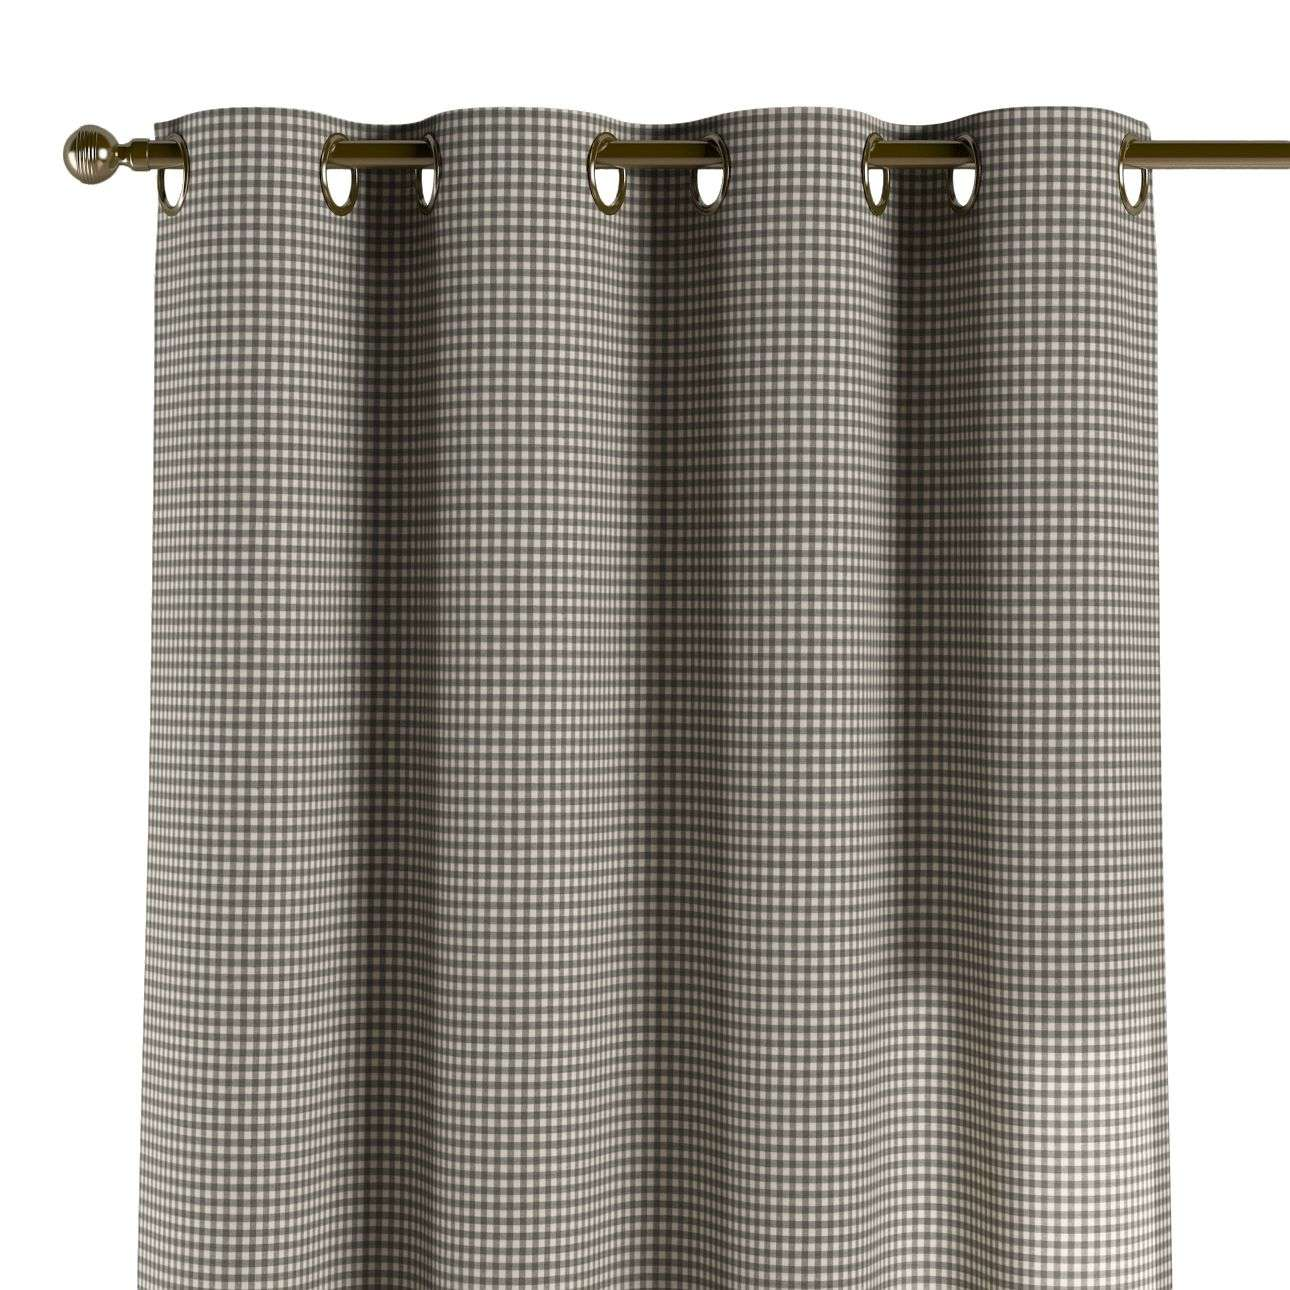 Eyelet curtains 130 x 260 cm (51 x 102 inch) in collection Quadro, fabric: 136-10